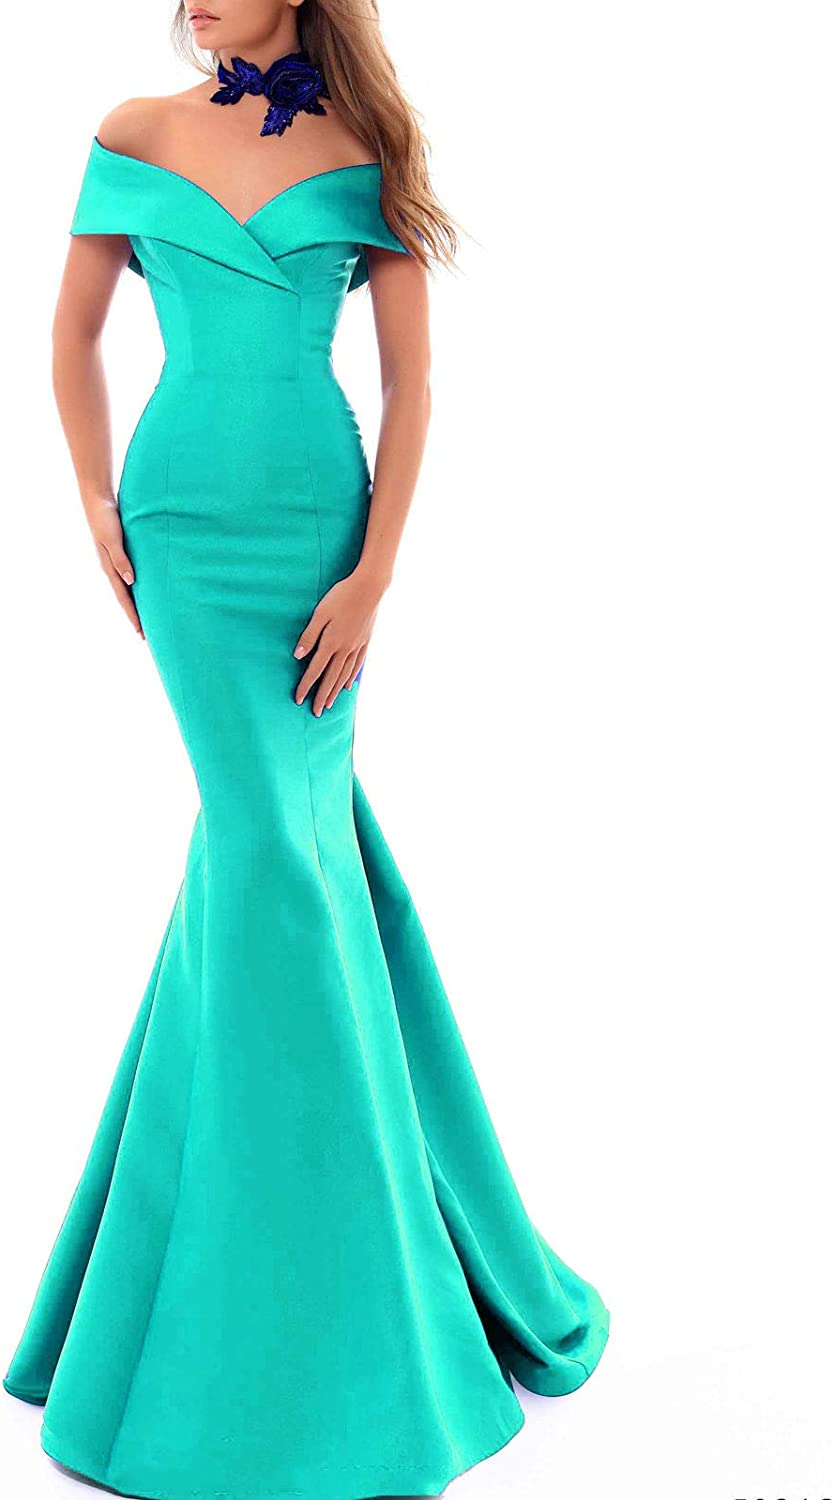 Aishanglina Women's Off The Shoulder Mermaid Formal Event Satin Gown Wedding Party Bridesmaid Dress